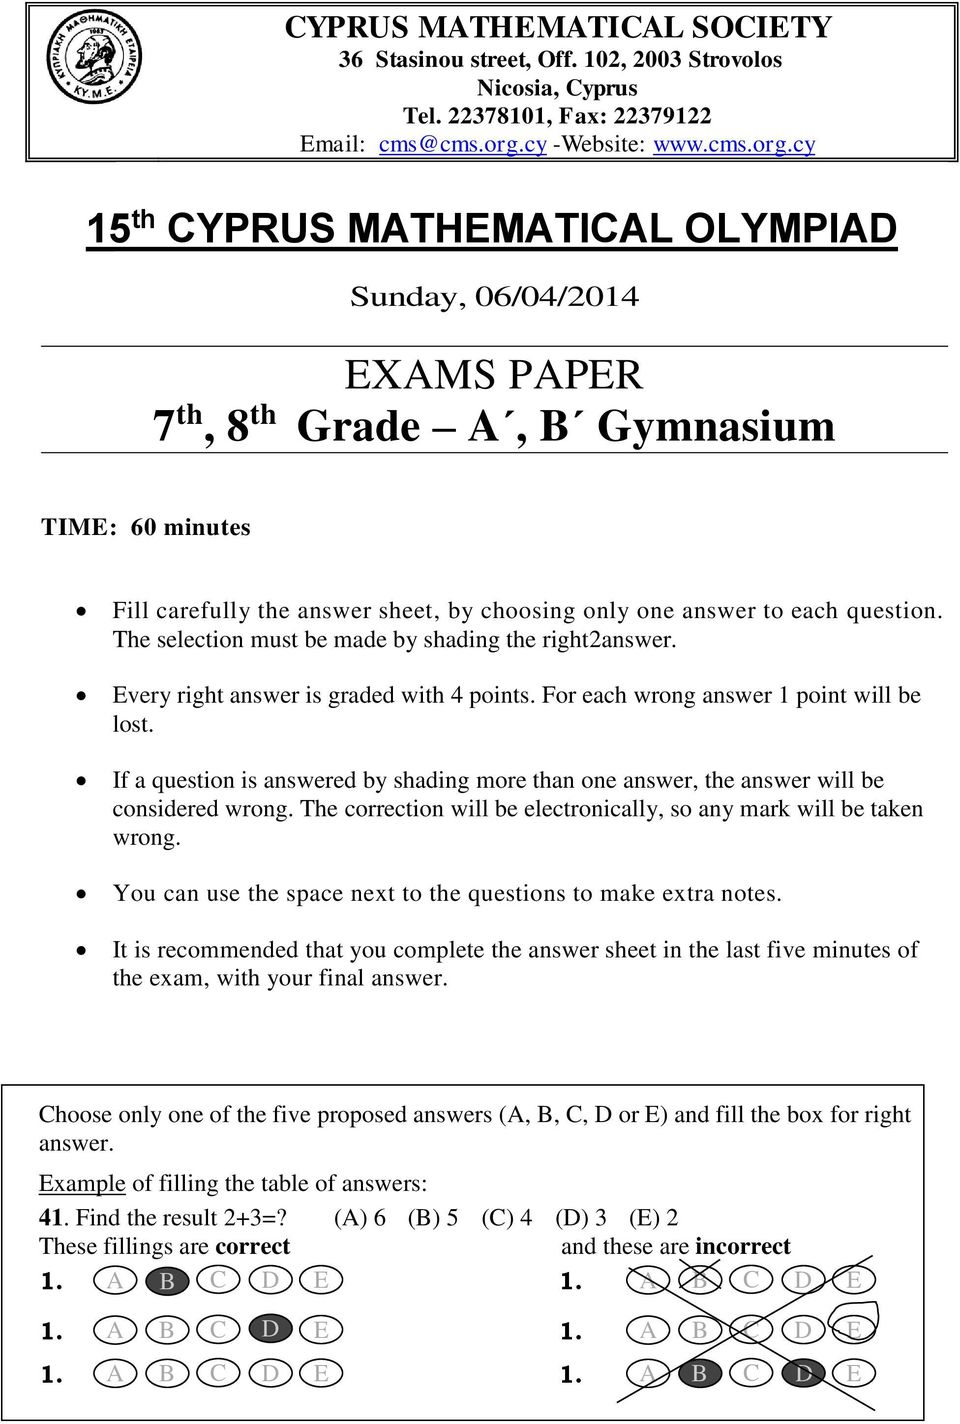 cy 15 th CYPRUS MATHEMATICAL OLYMPIAD Sunday, 06/04/014 EXAMS PAPER 7 th, 8 th Grade A, B Gymnasium TIME: 60 minutes Fill carefully the answer sheet, by choosing only one answer to each question.